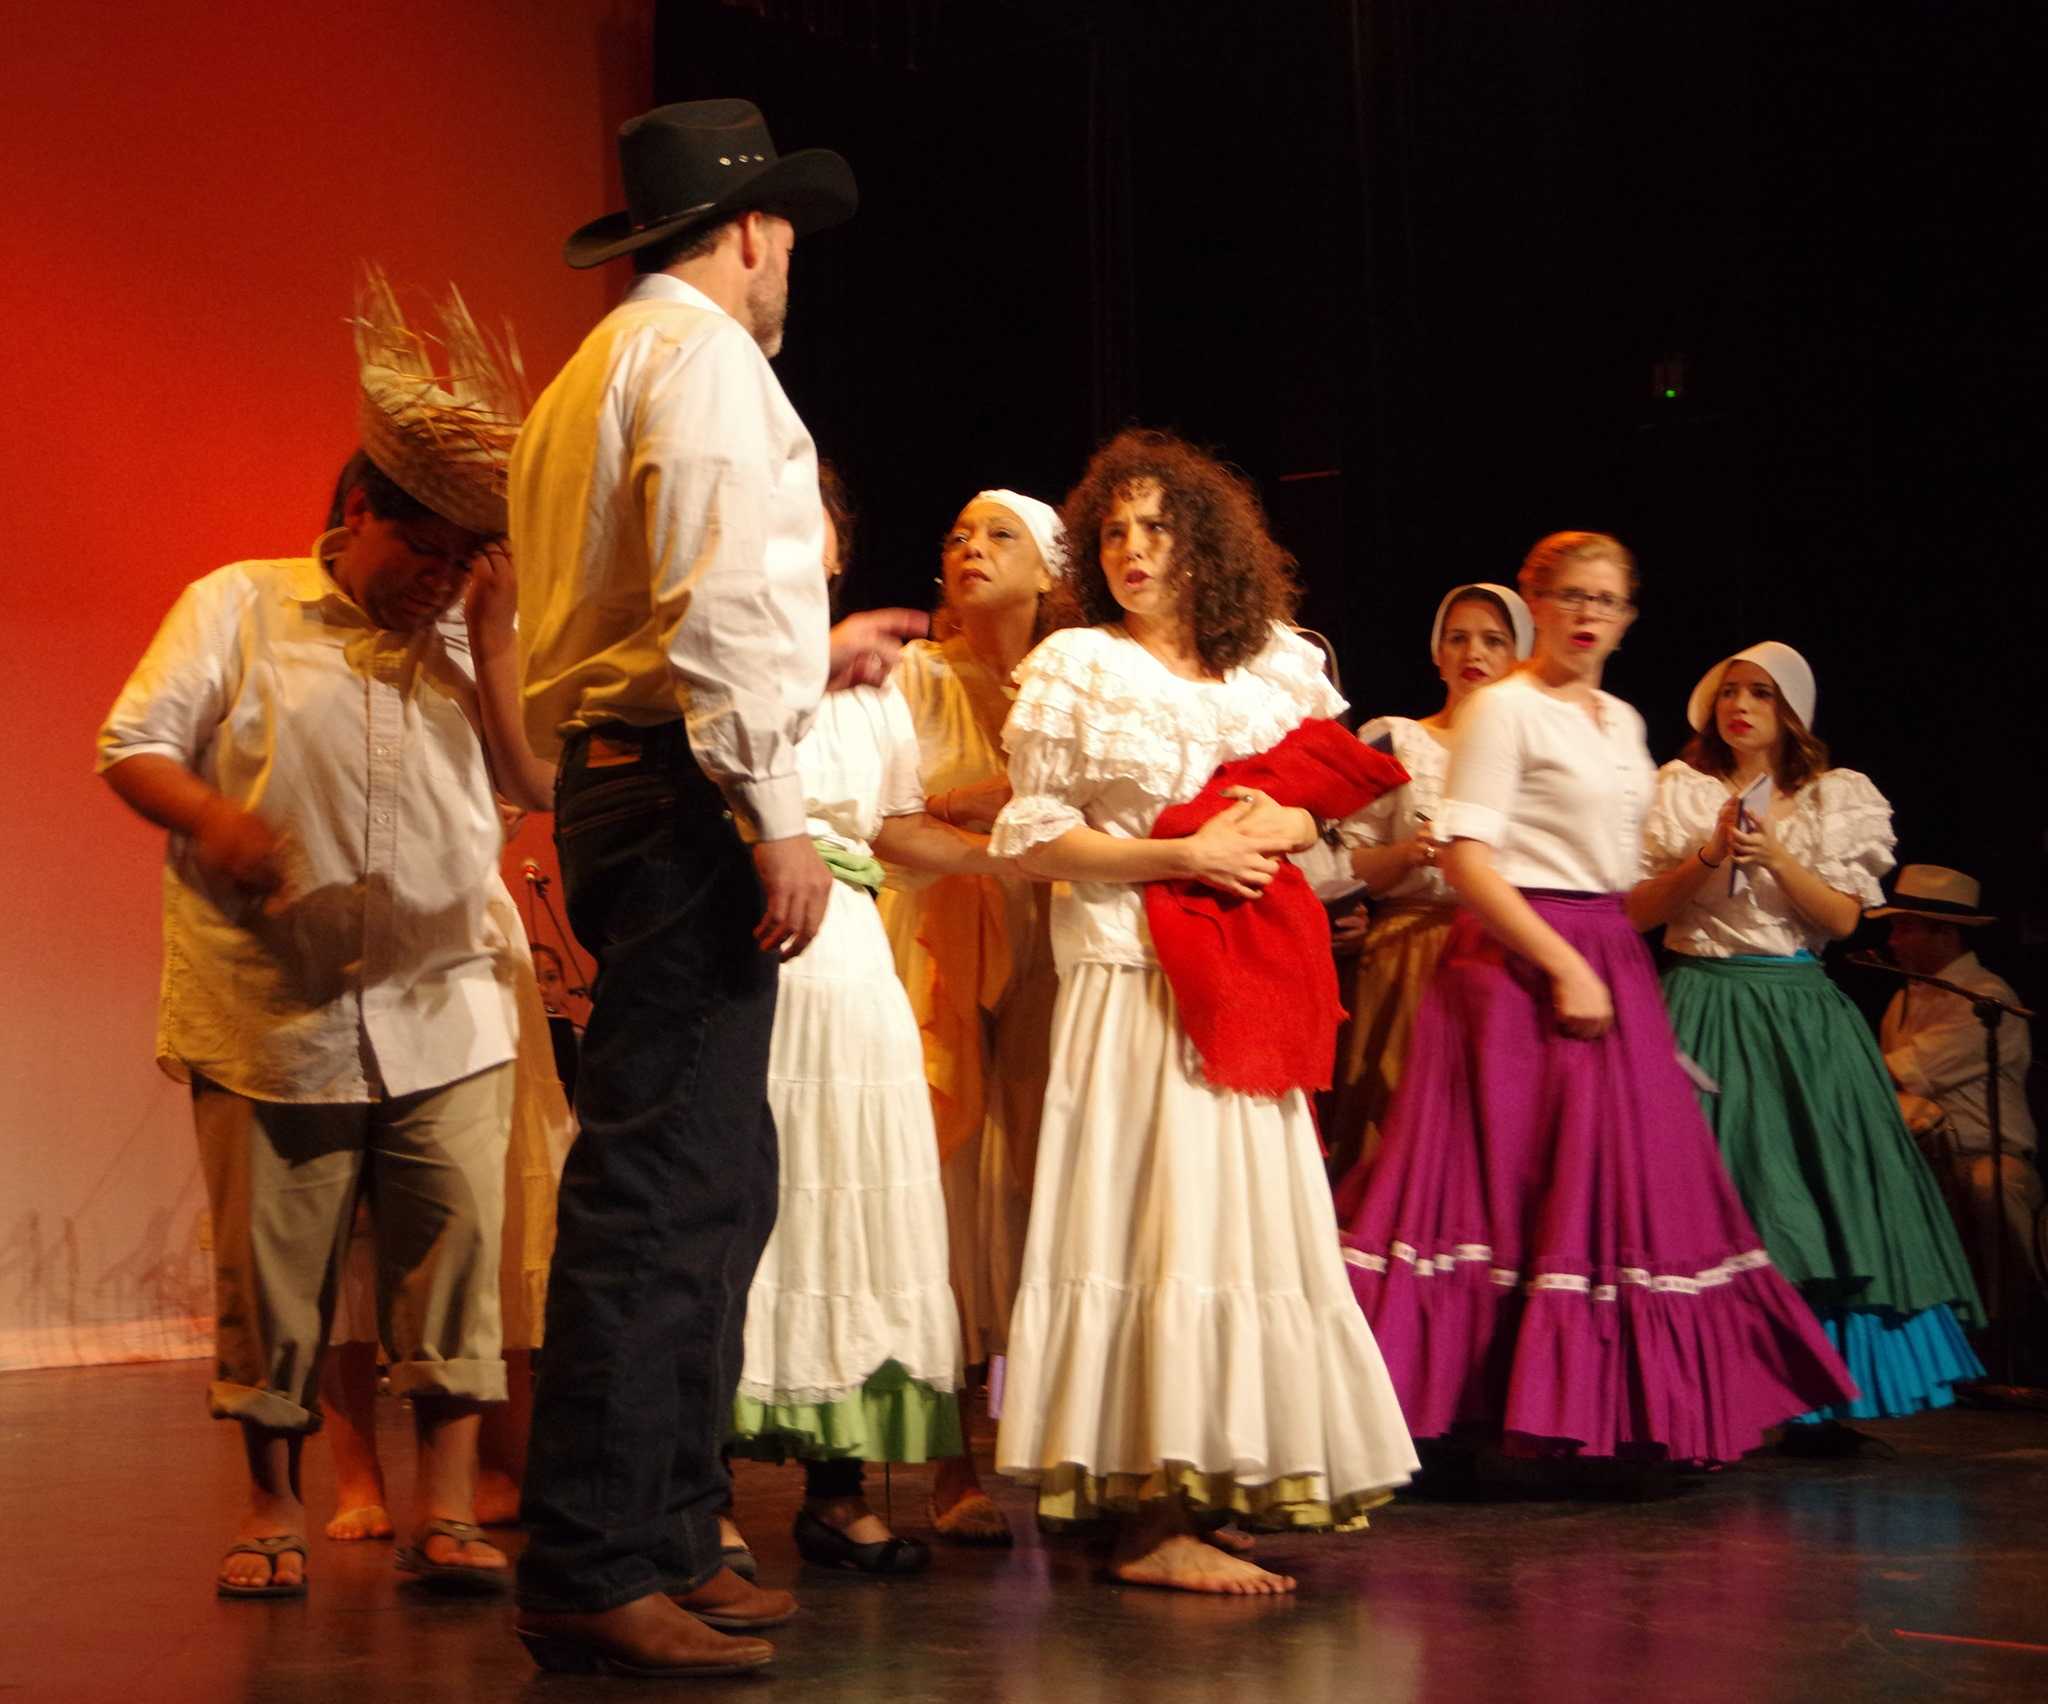 Auditions for Sembrando Herencia - Las Lavanderas, by Puerto Rican Folkloric Dance & Cultural Center